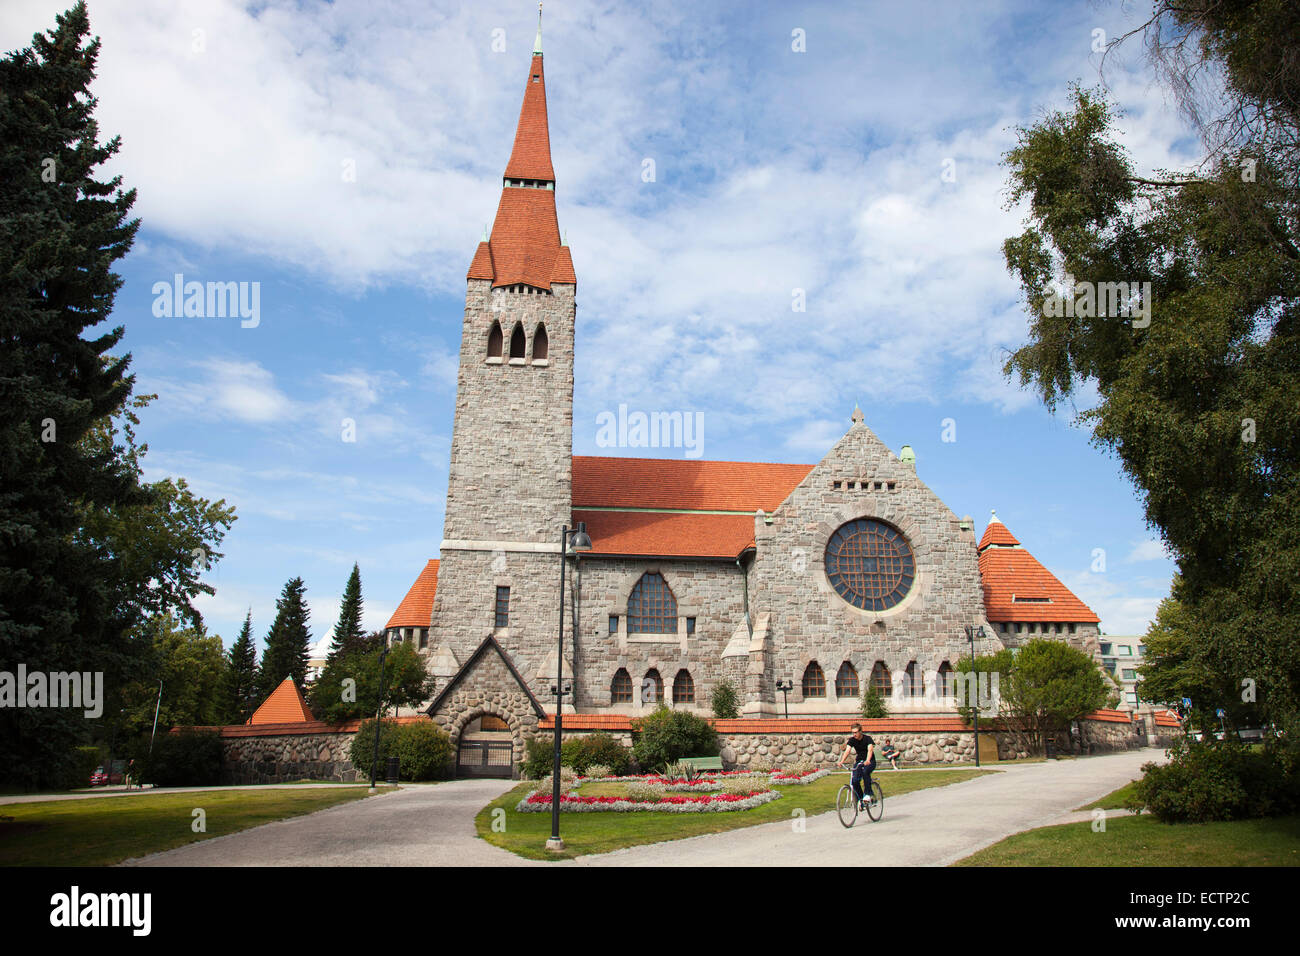 cathedral, tampere, finland, europe - Stock Image